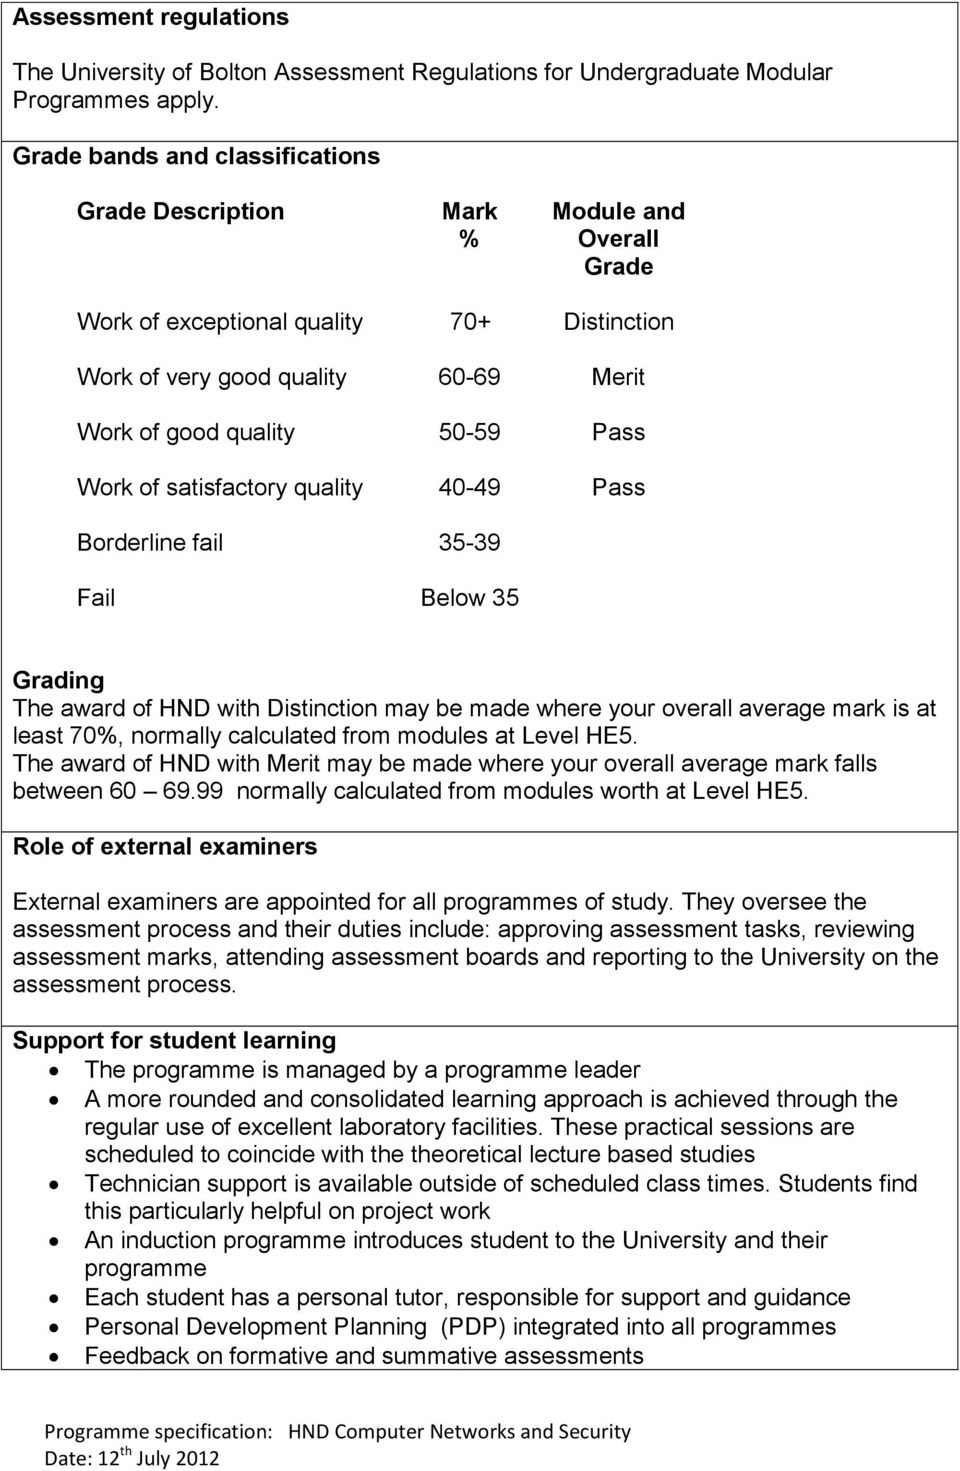 Work of satisfactory quality 40-49 Pass Borderline fail 35-39 Fail Below 35 Grading The award of HND with Distinction may be made where your overall average mark is at least 70%, normally calculated